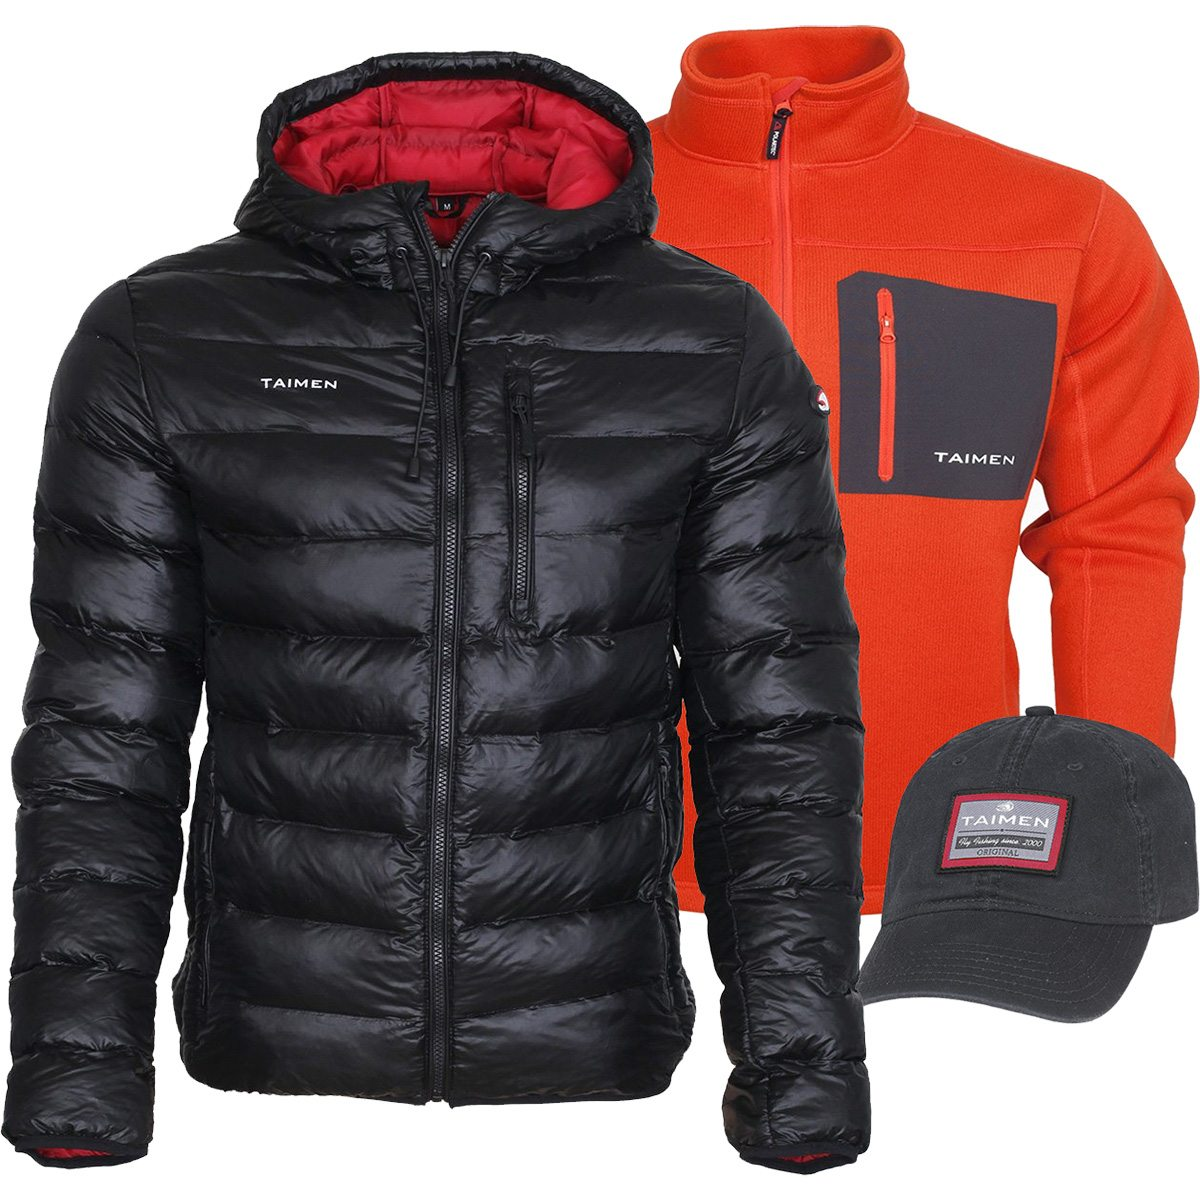 Taimen Anadyr Jacket 3 Elements Set